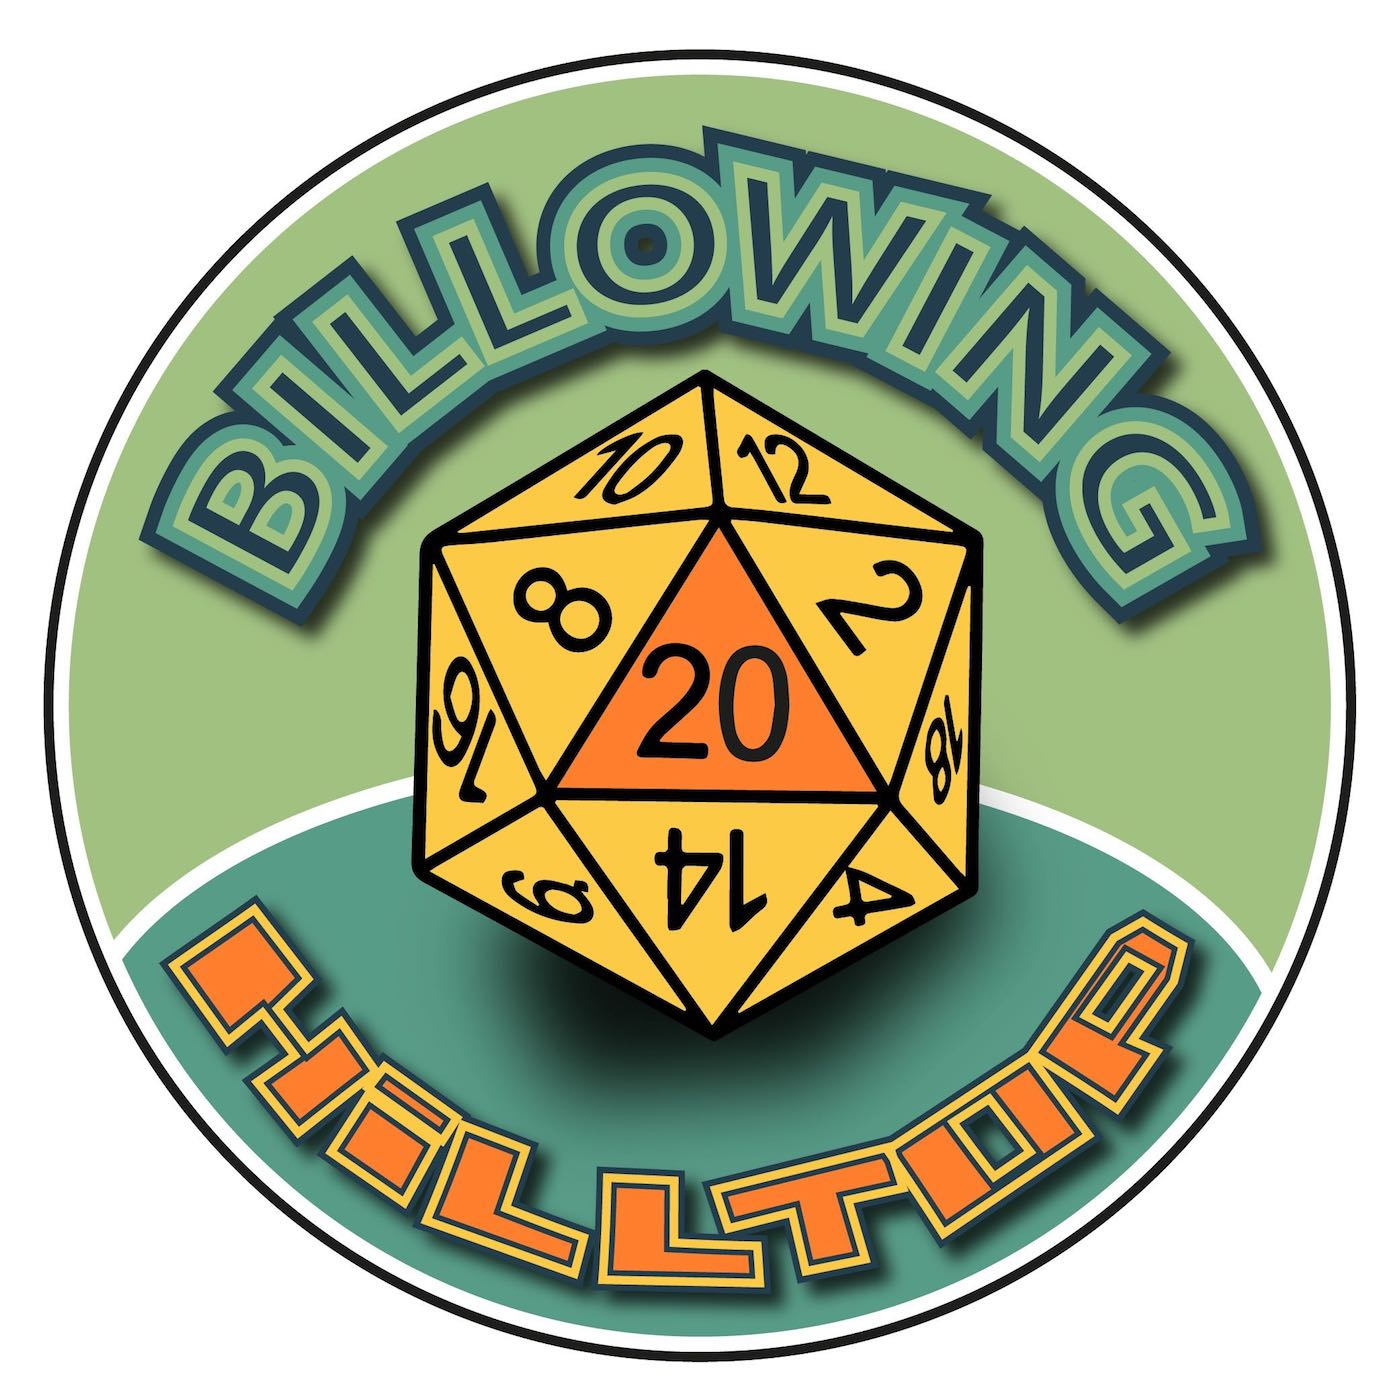 The Billowing Hilltop Podcast